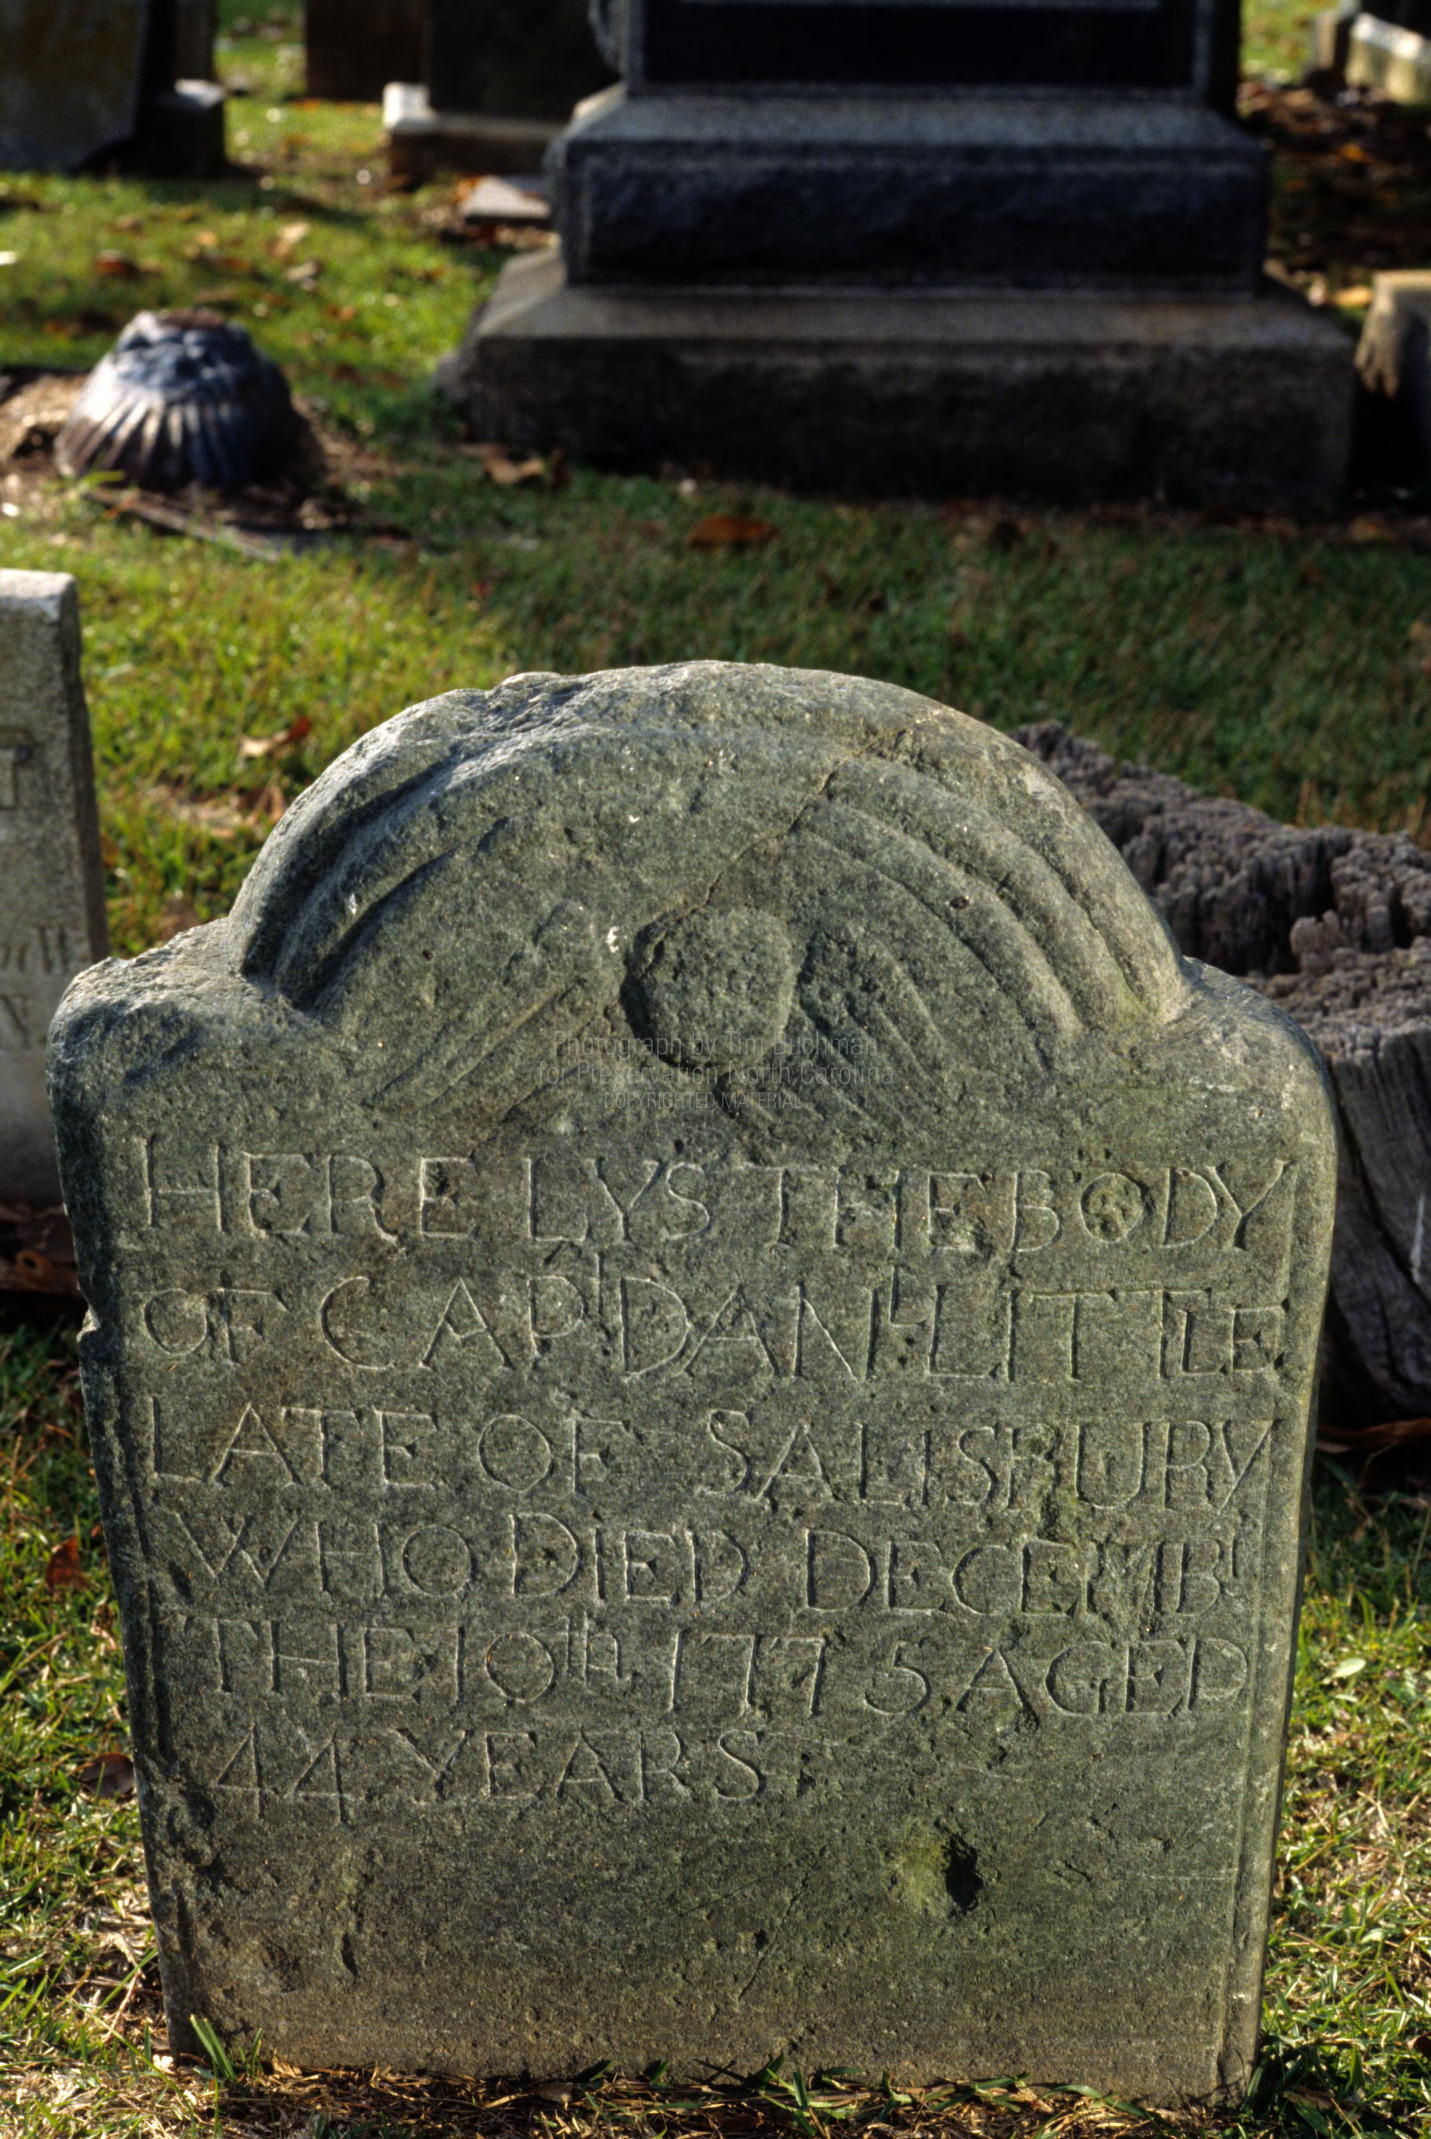 Grave of Captain Daniel Little, Old English Cemetery, Salisbury, Rowan County, North Carolina